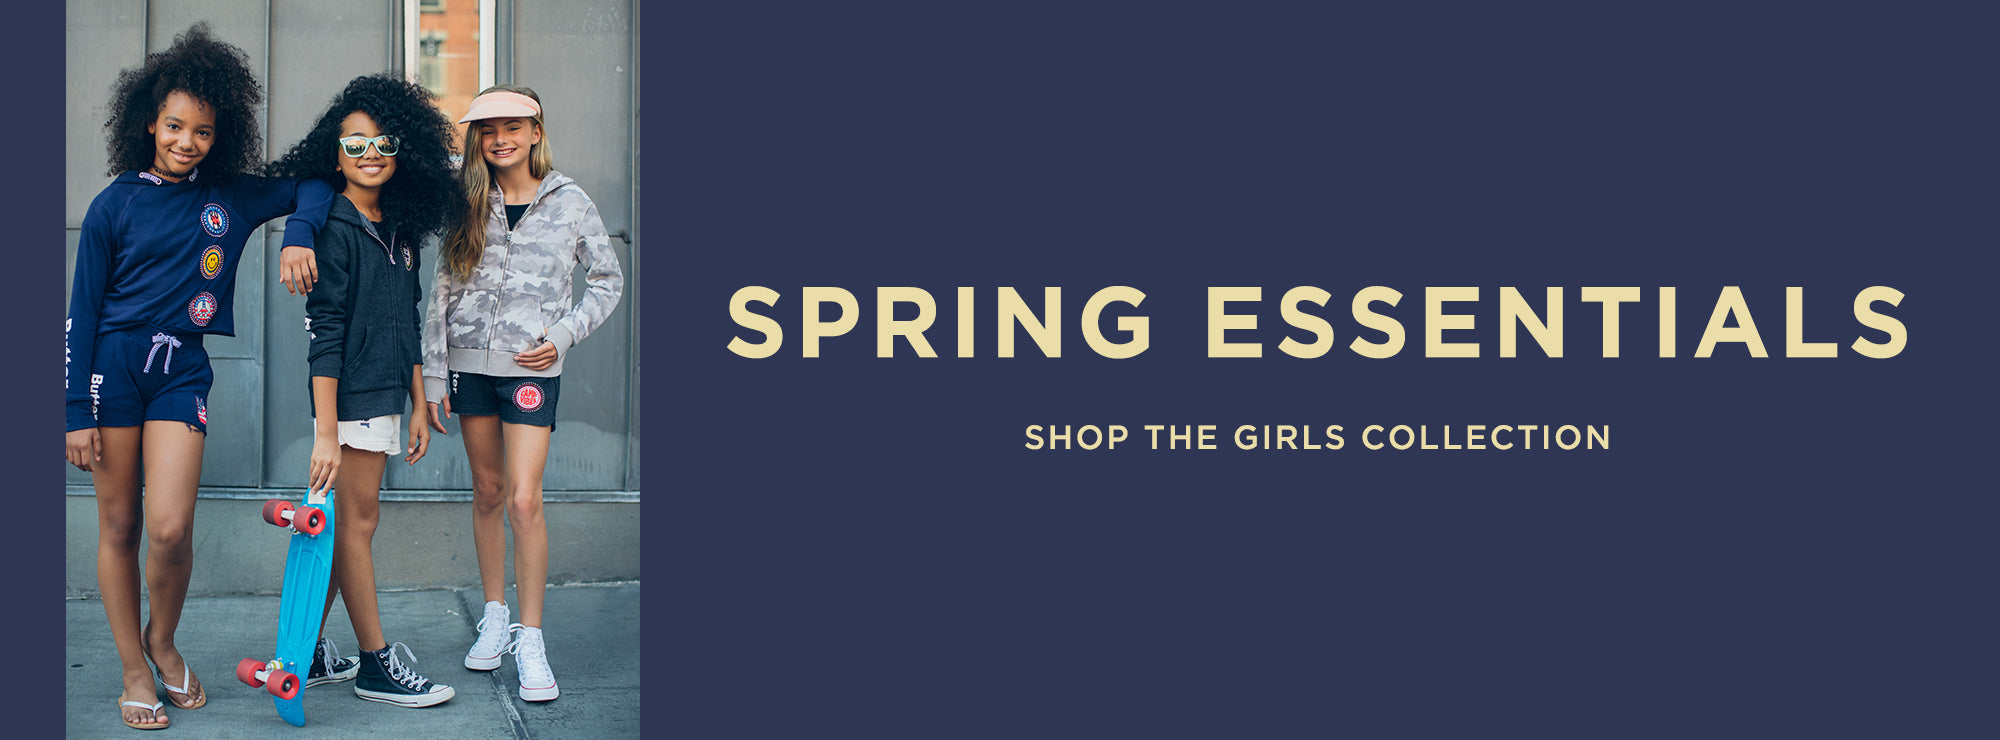 Spring essentials. Shop the girls collection